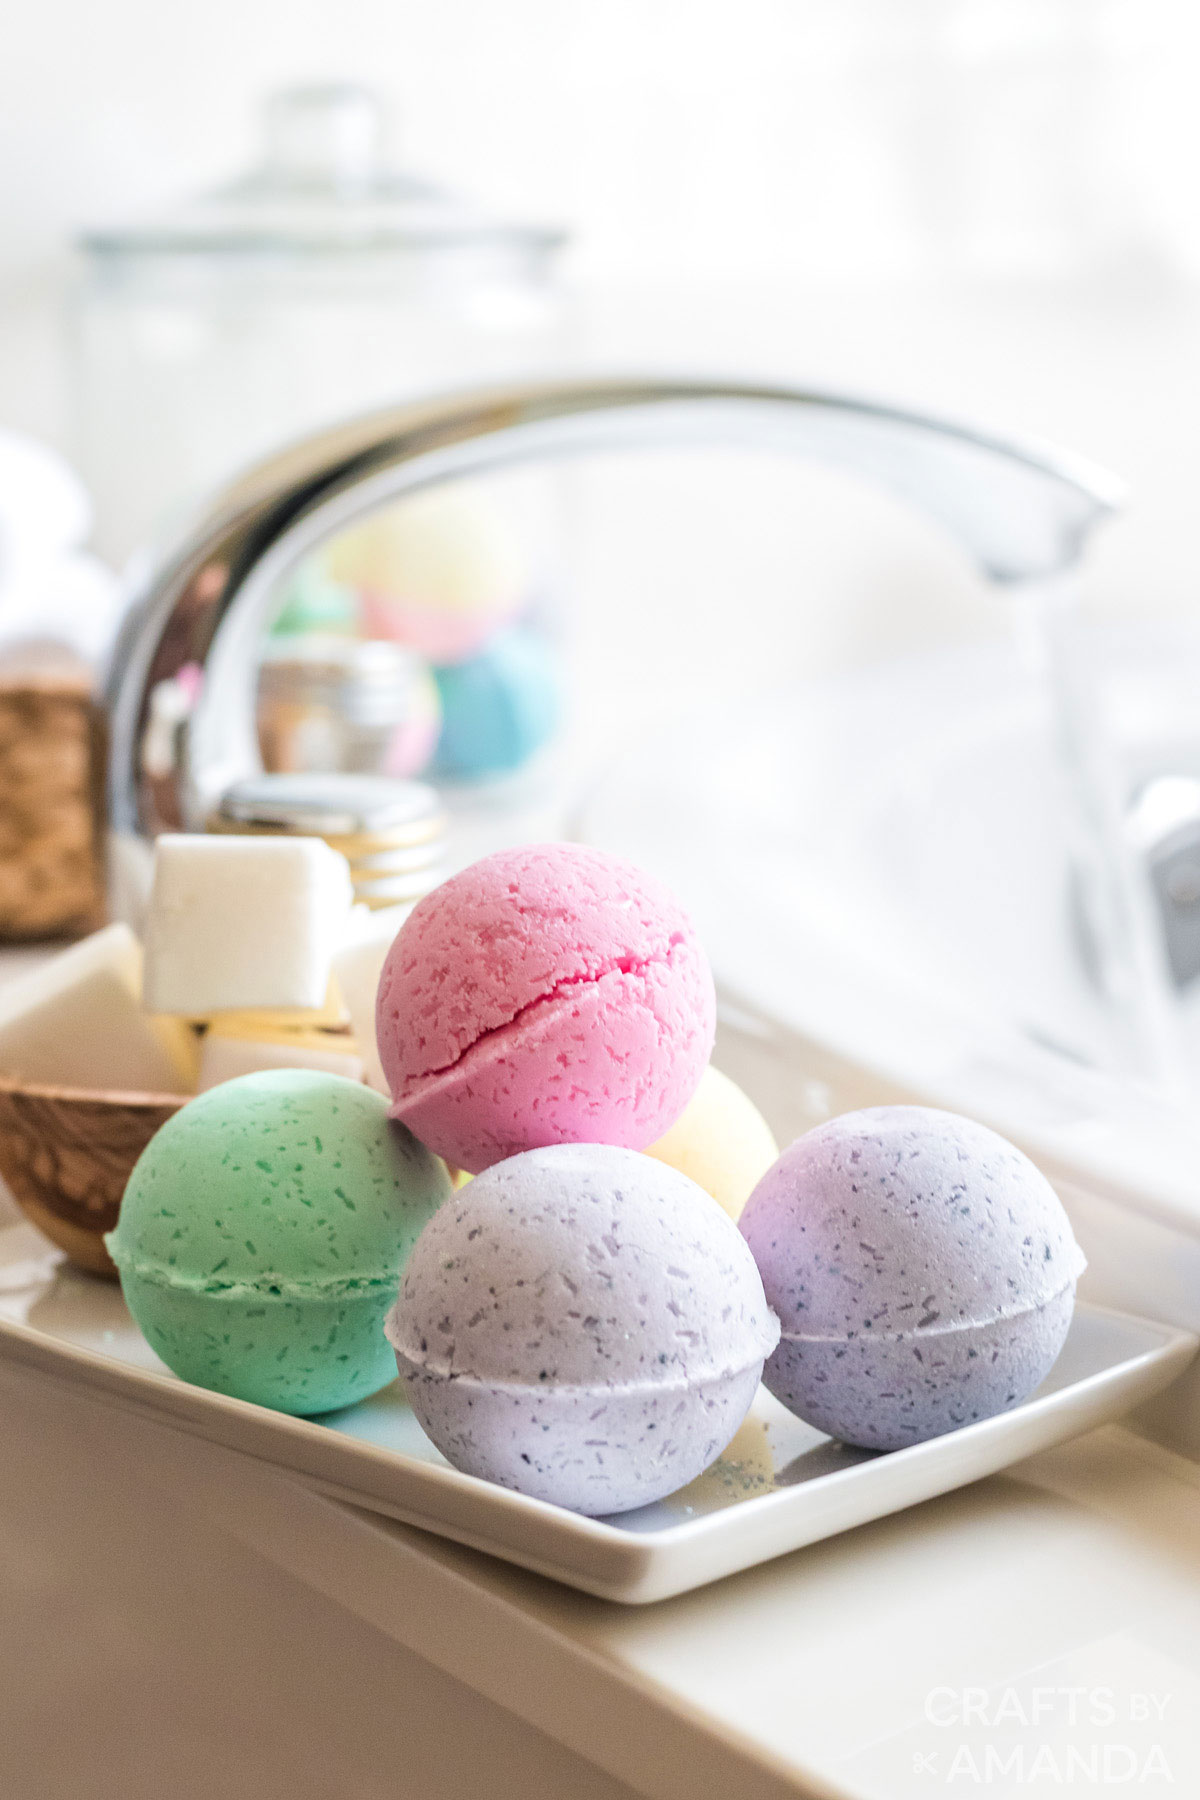 bath bombs on the side of the bathtub